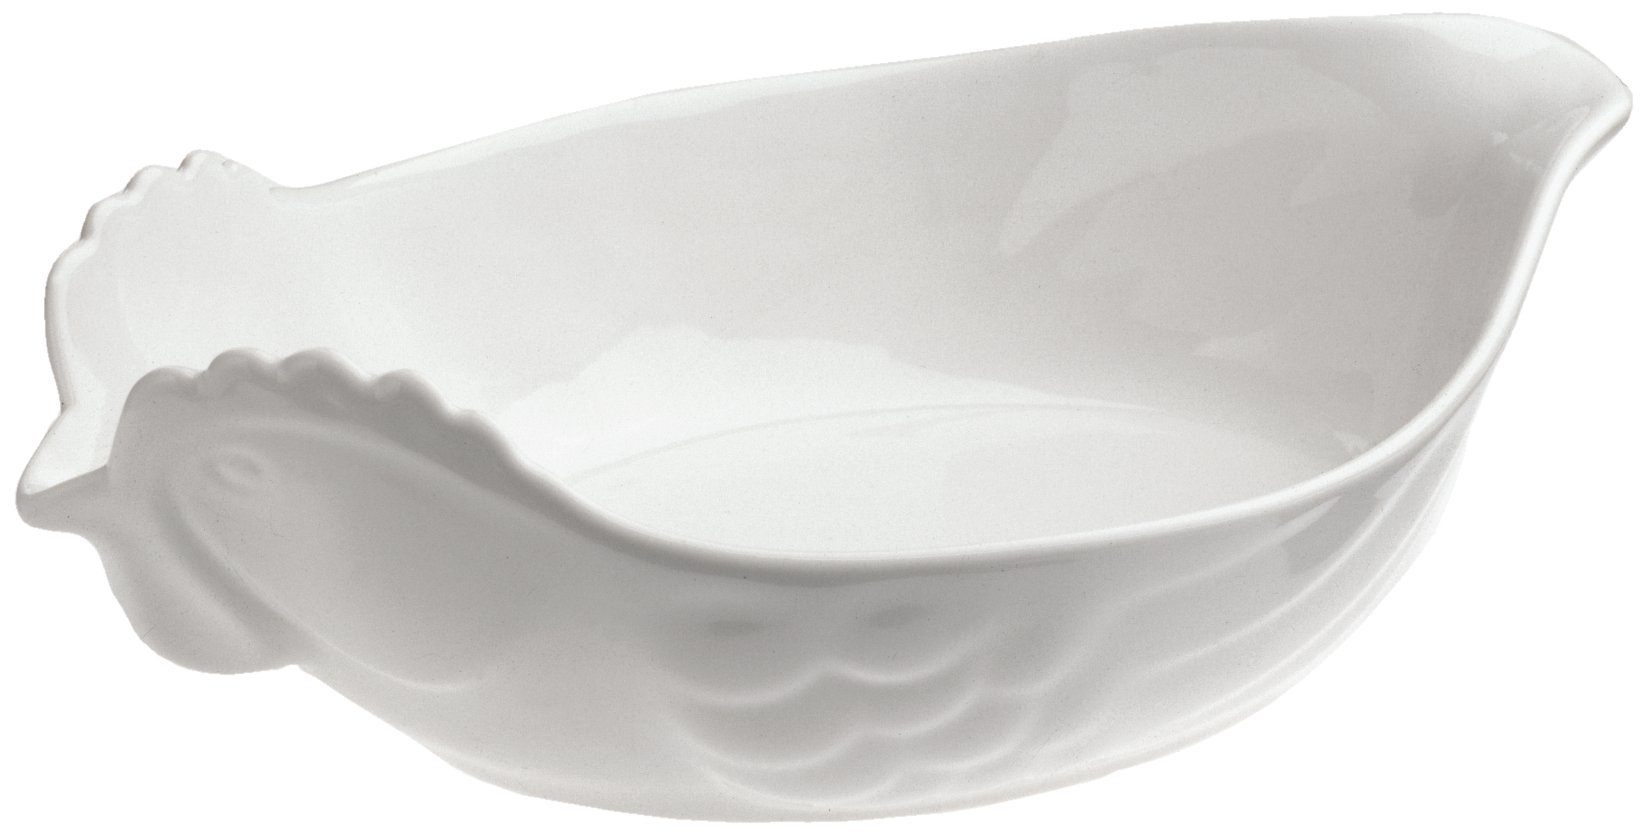 Revol Happy Cuisine White Porcelain 2 Quart Poultry Roasting Dish